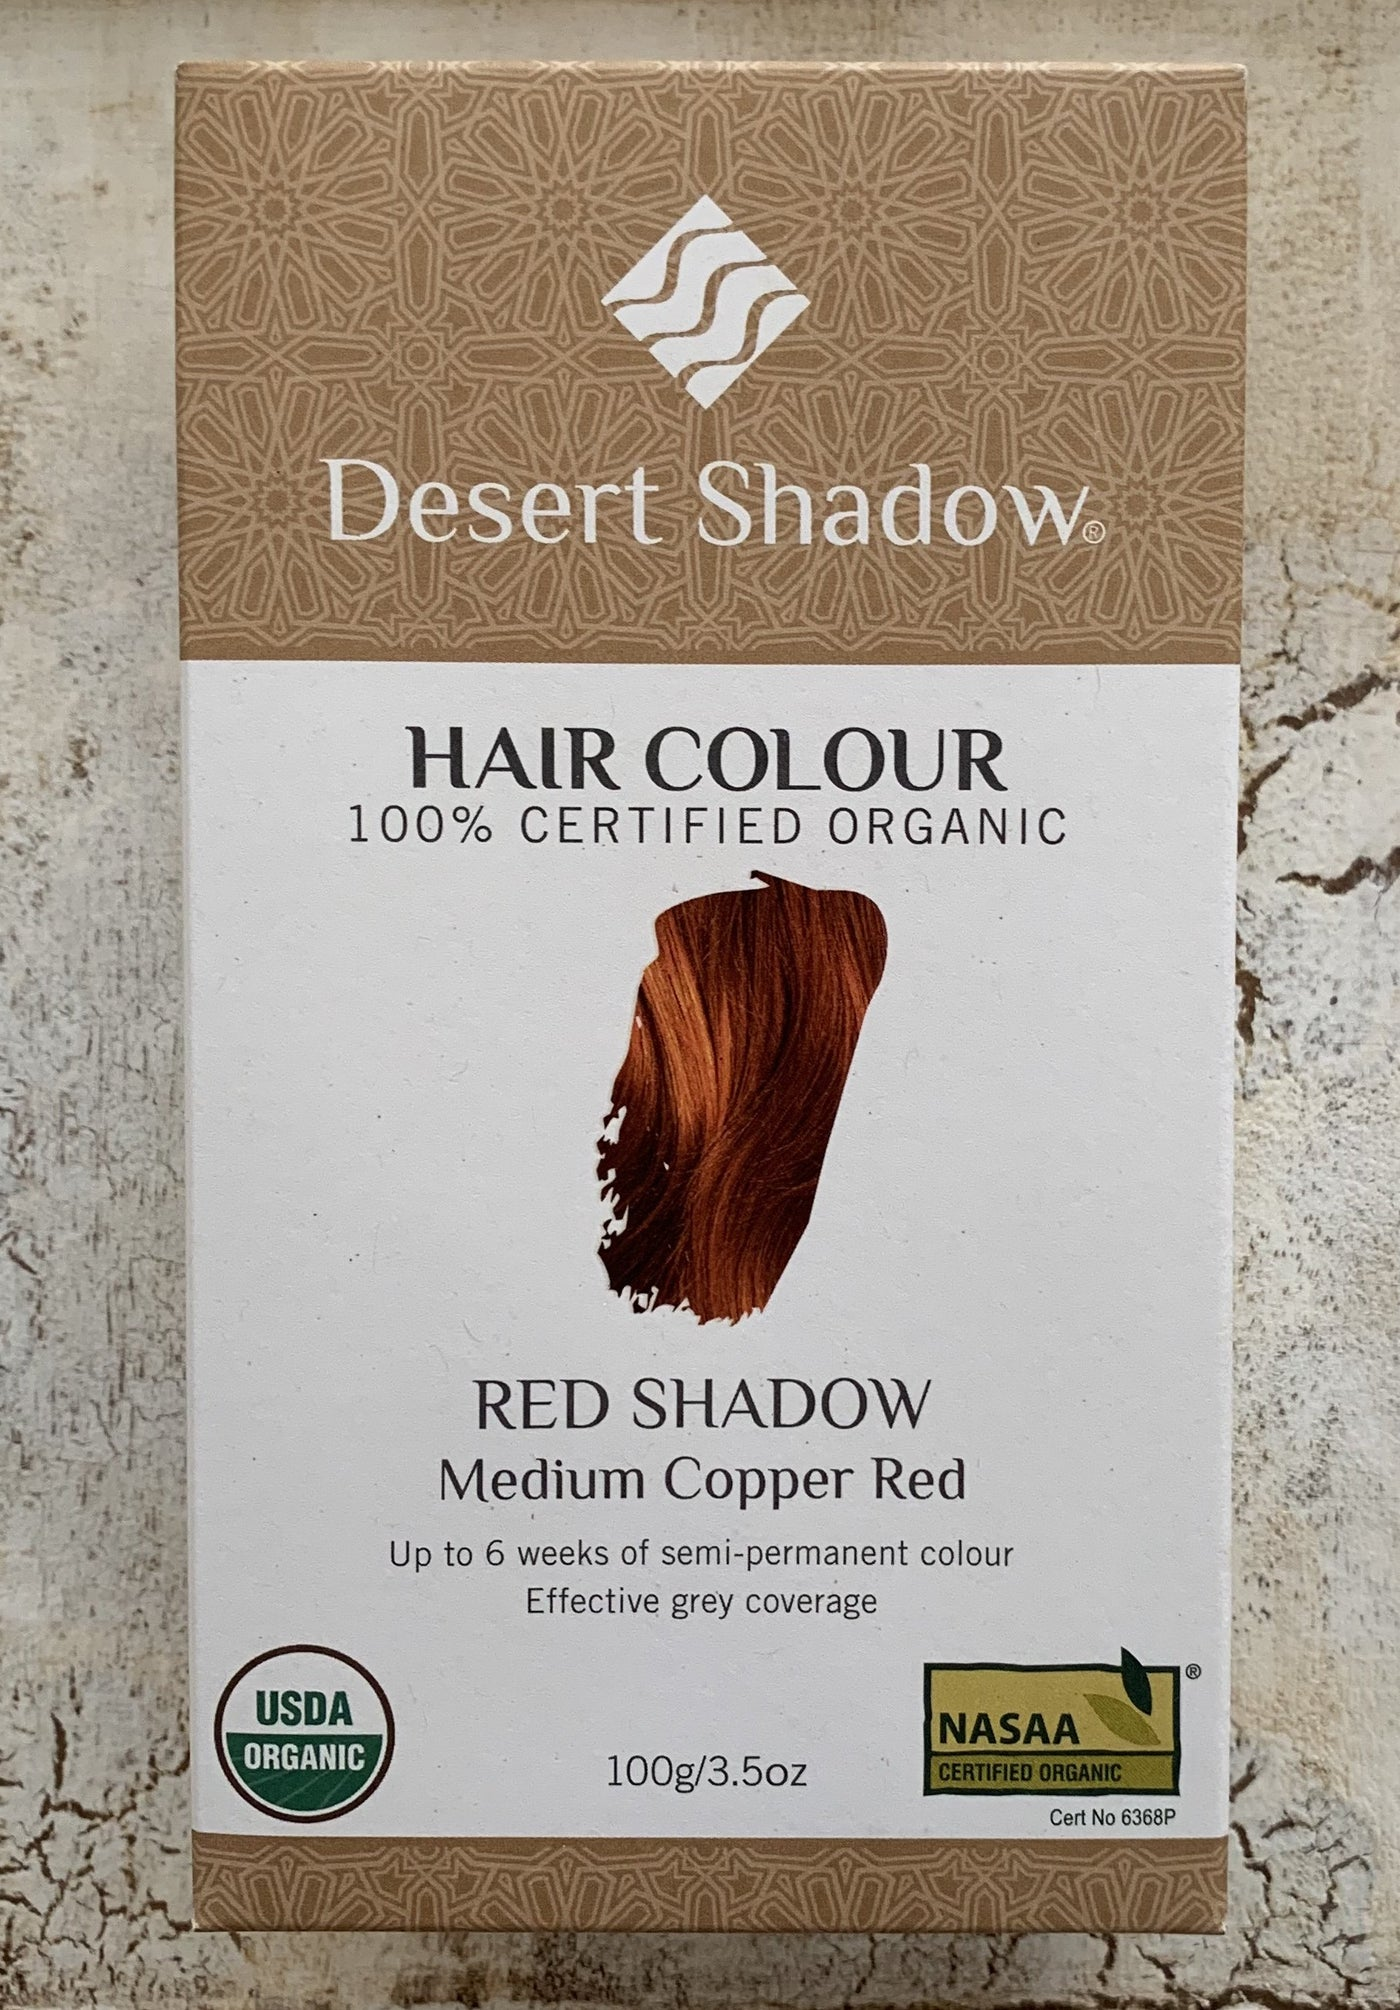 Desert Shadow 100% Certified Organic Hair Dye - Red Shadow 100g